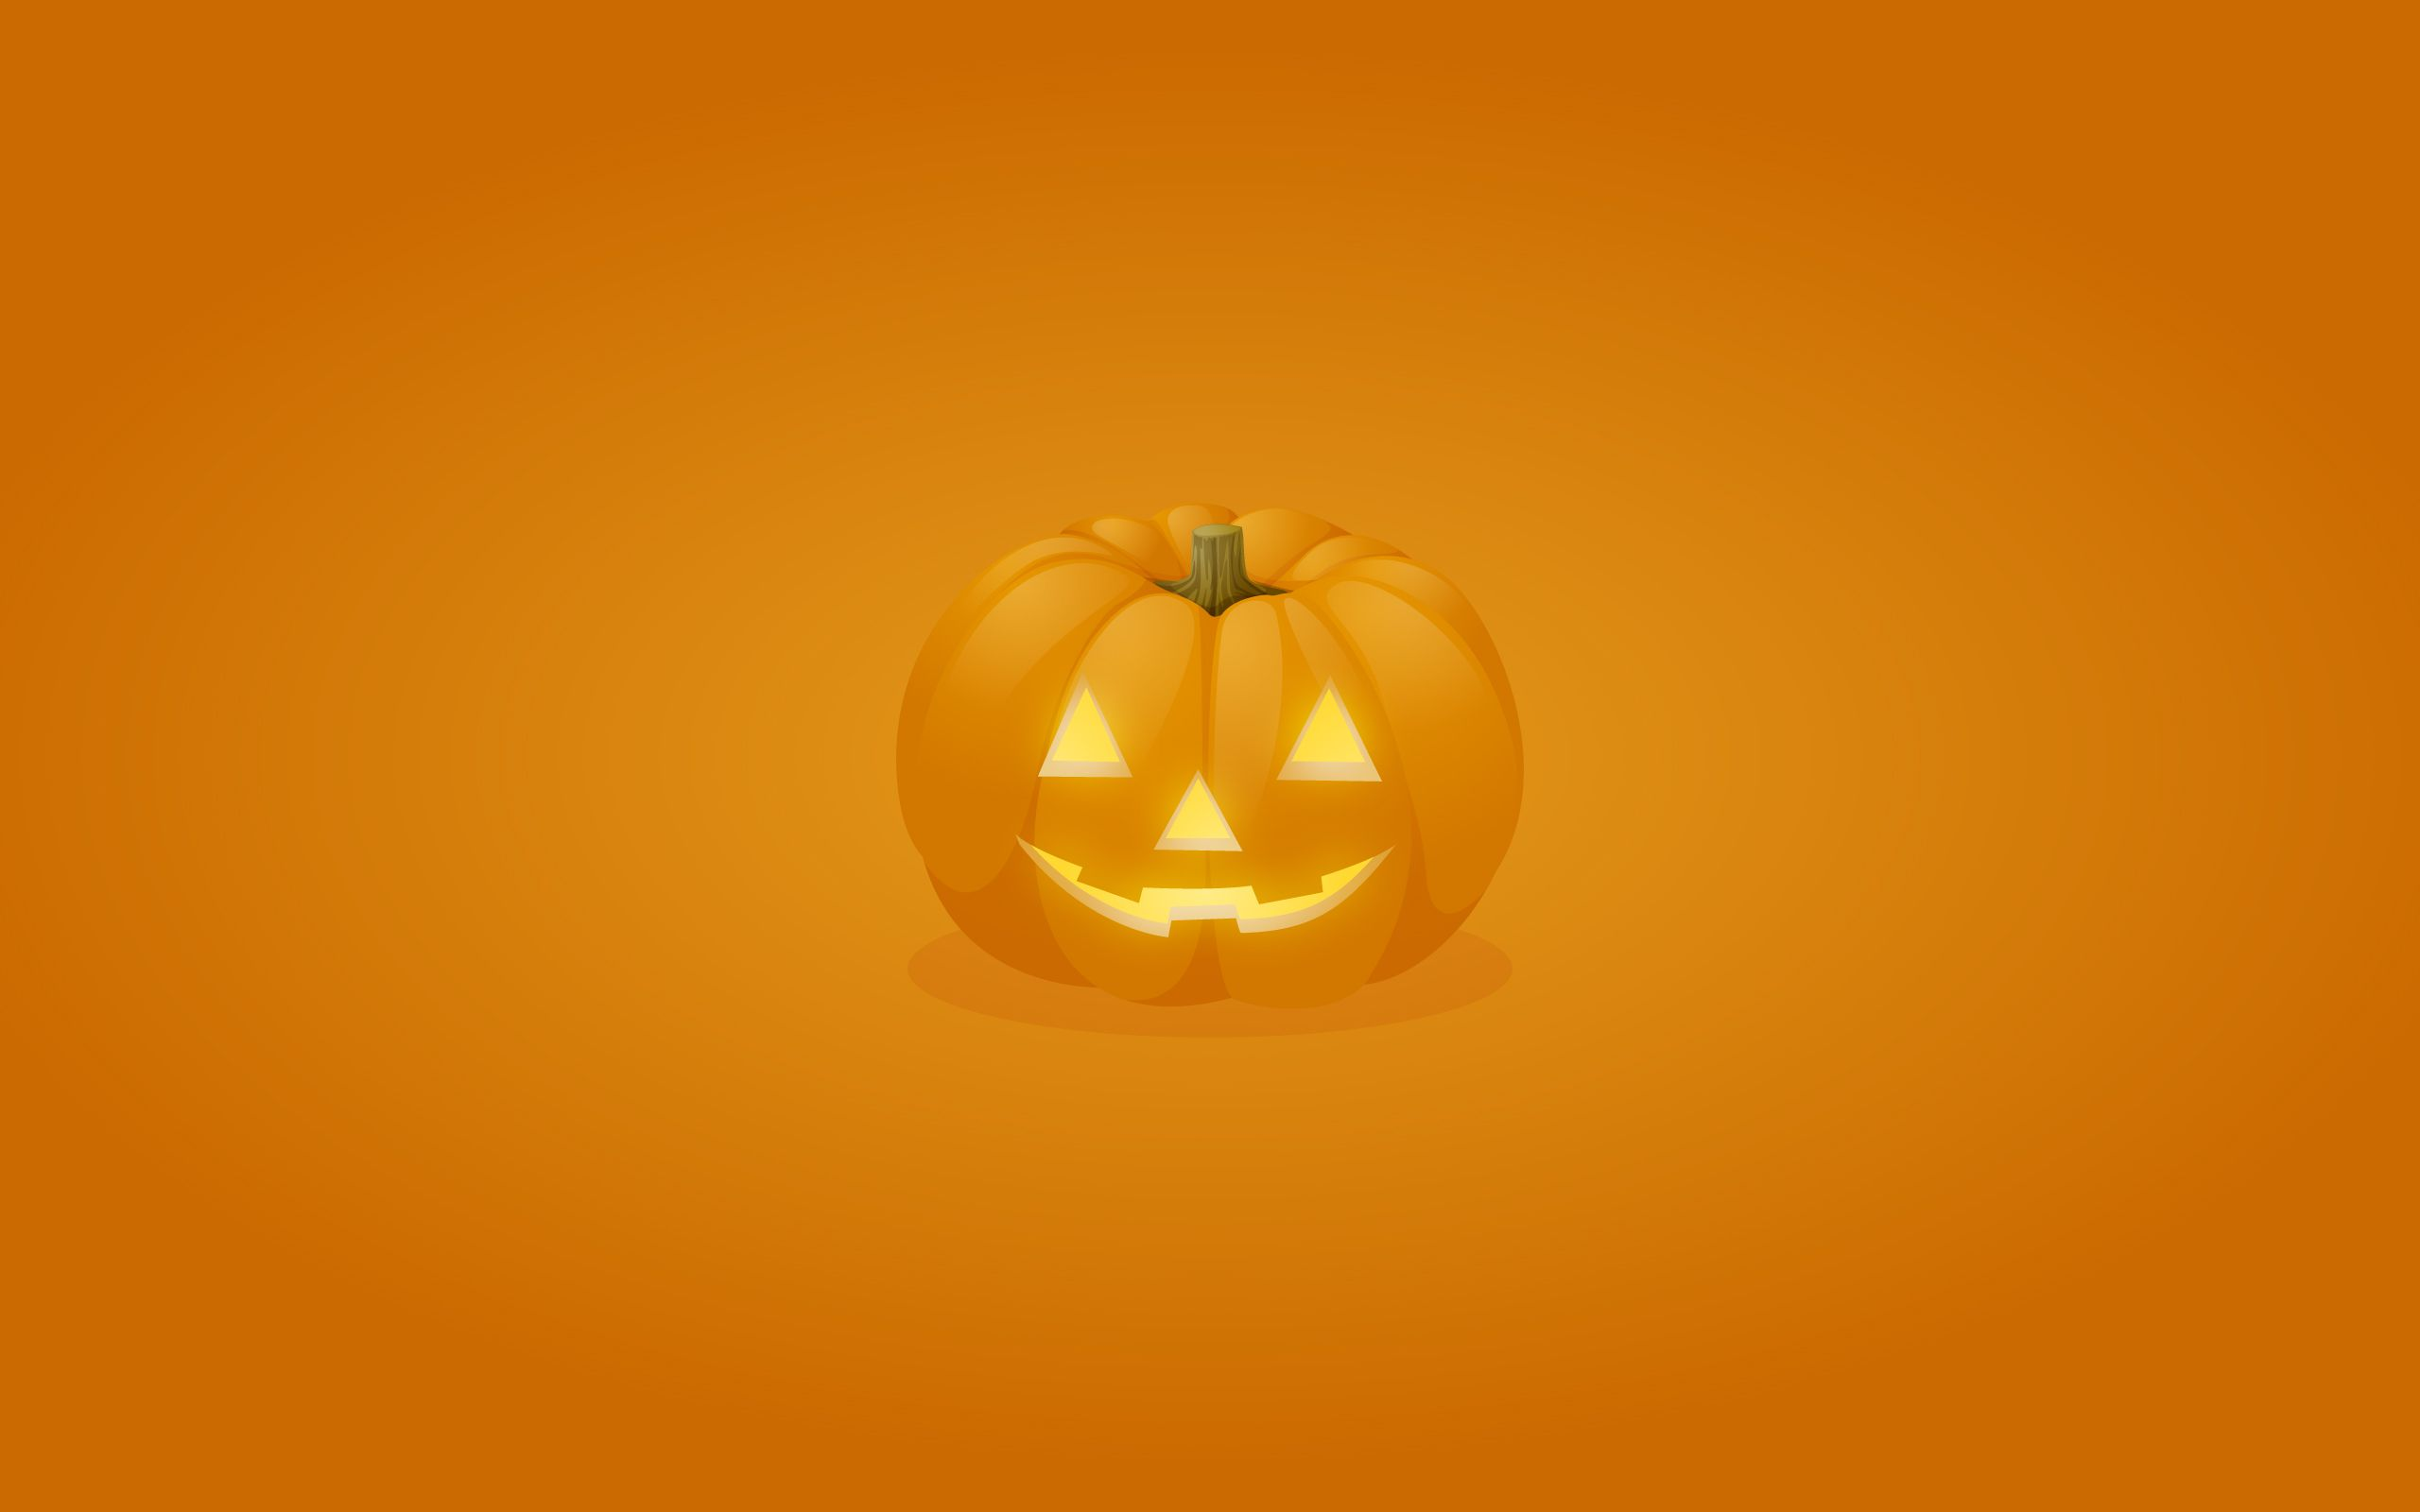 Wallpaper Roundup All Hallow S Eve And Spooky Scenes Pumpkin Wallpaper Halloween Pumpkins Halloween Backgrounds